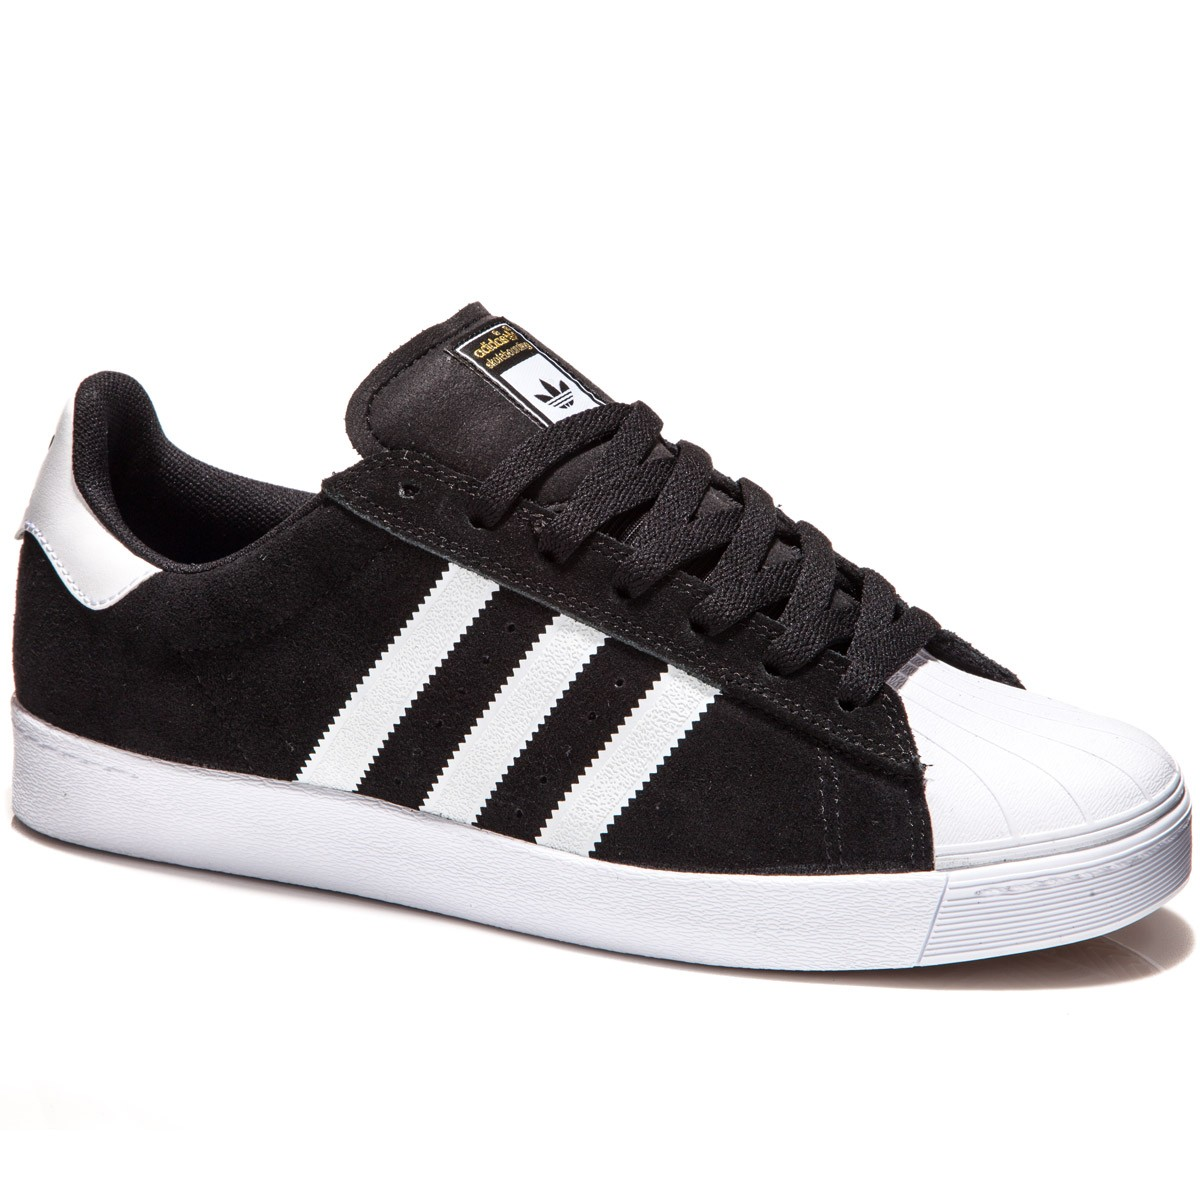 4fcc4ab4fc0a57 Cheap Adidas Women Originals Superstar 80s Primeknit Shoes In Footwear